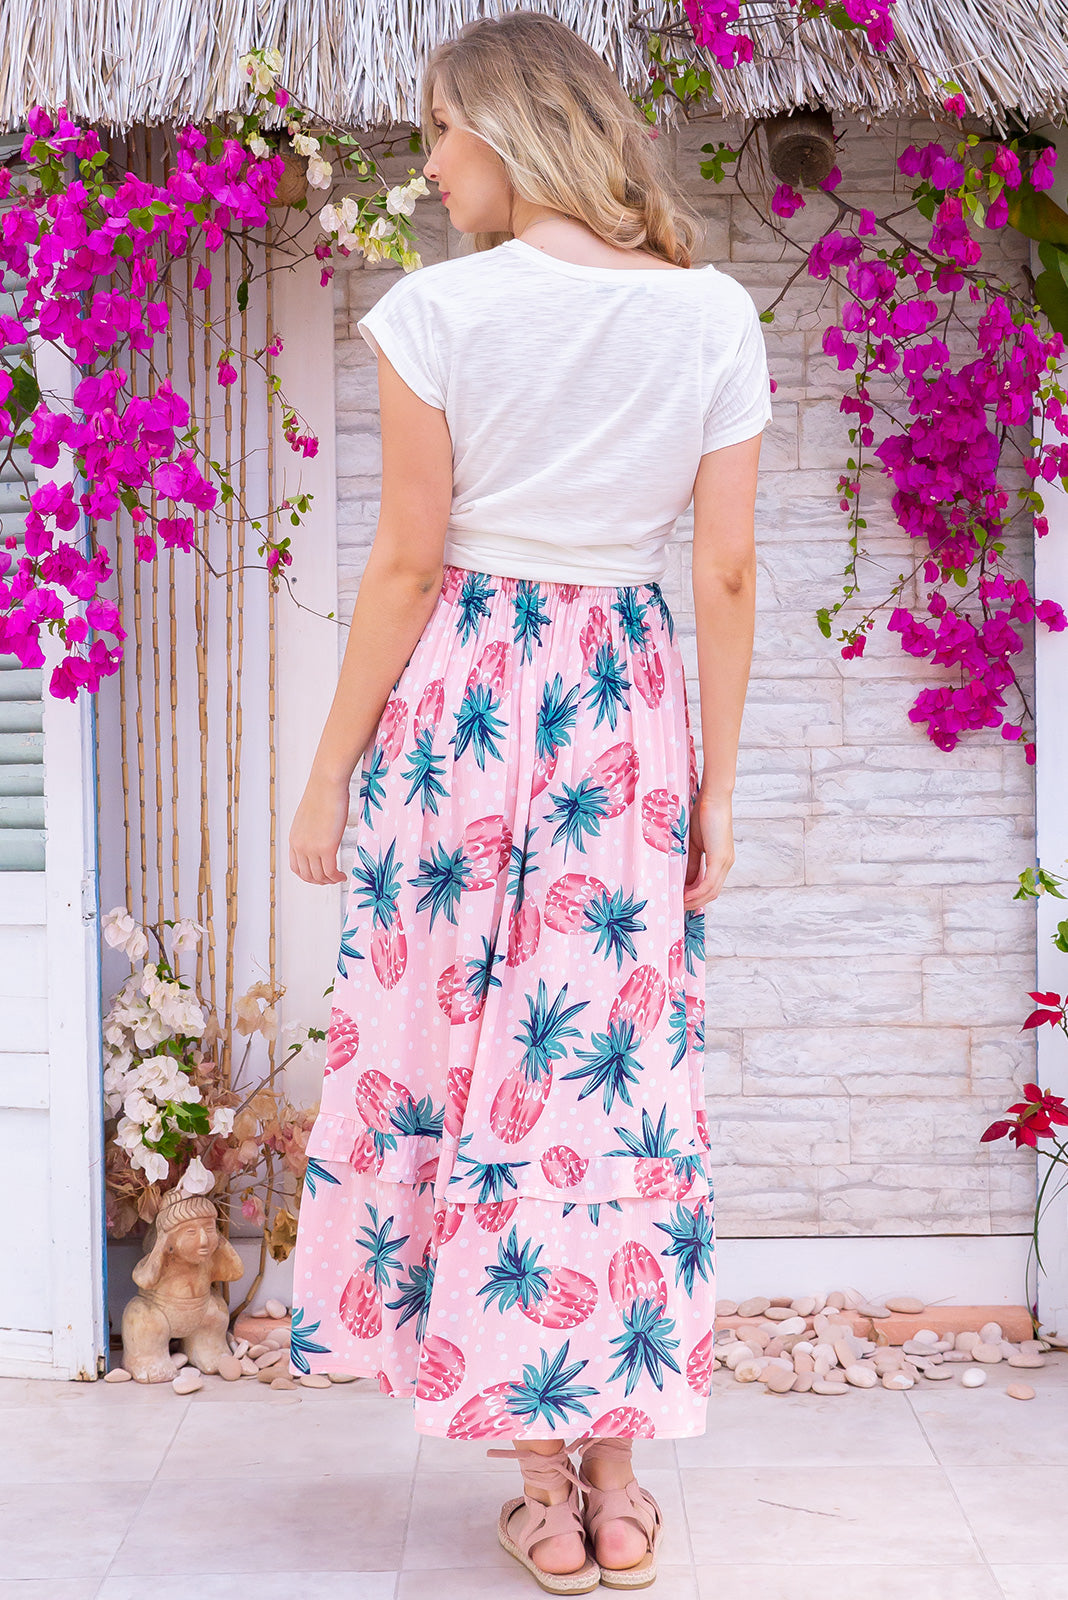 Coolum Pink Pine Skirt made in 100% rayon, fresh and breezy spring/summer design. Side pockets, button front and frill detail.